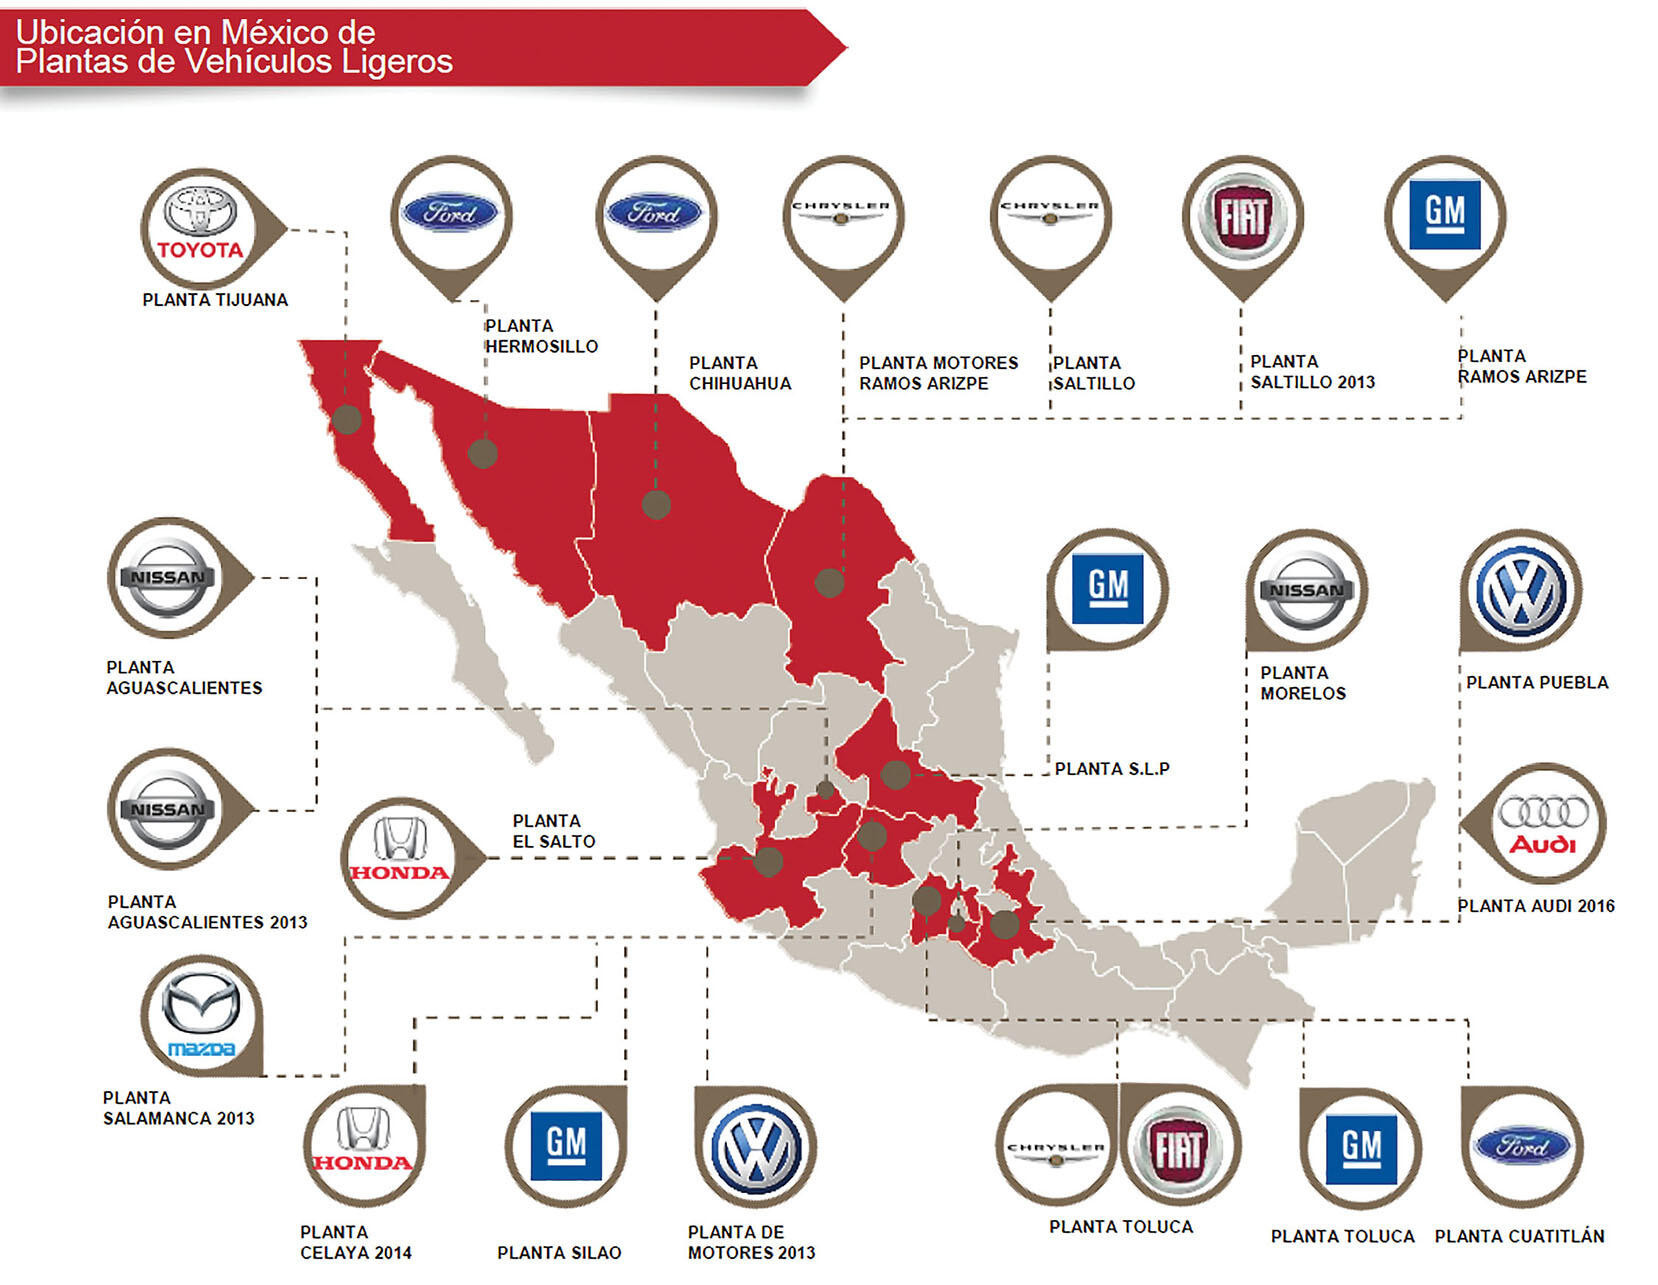 A map with logos of various manufacturers shows some of the auto production facilities in Mexico. (Image from ProMéxico/Gobierno de México.)